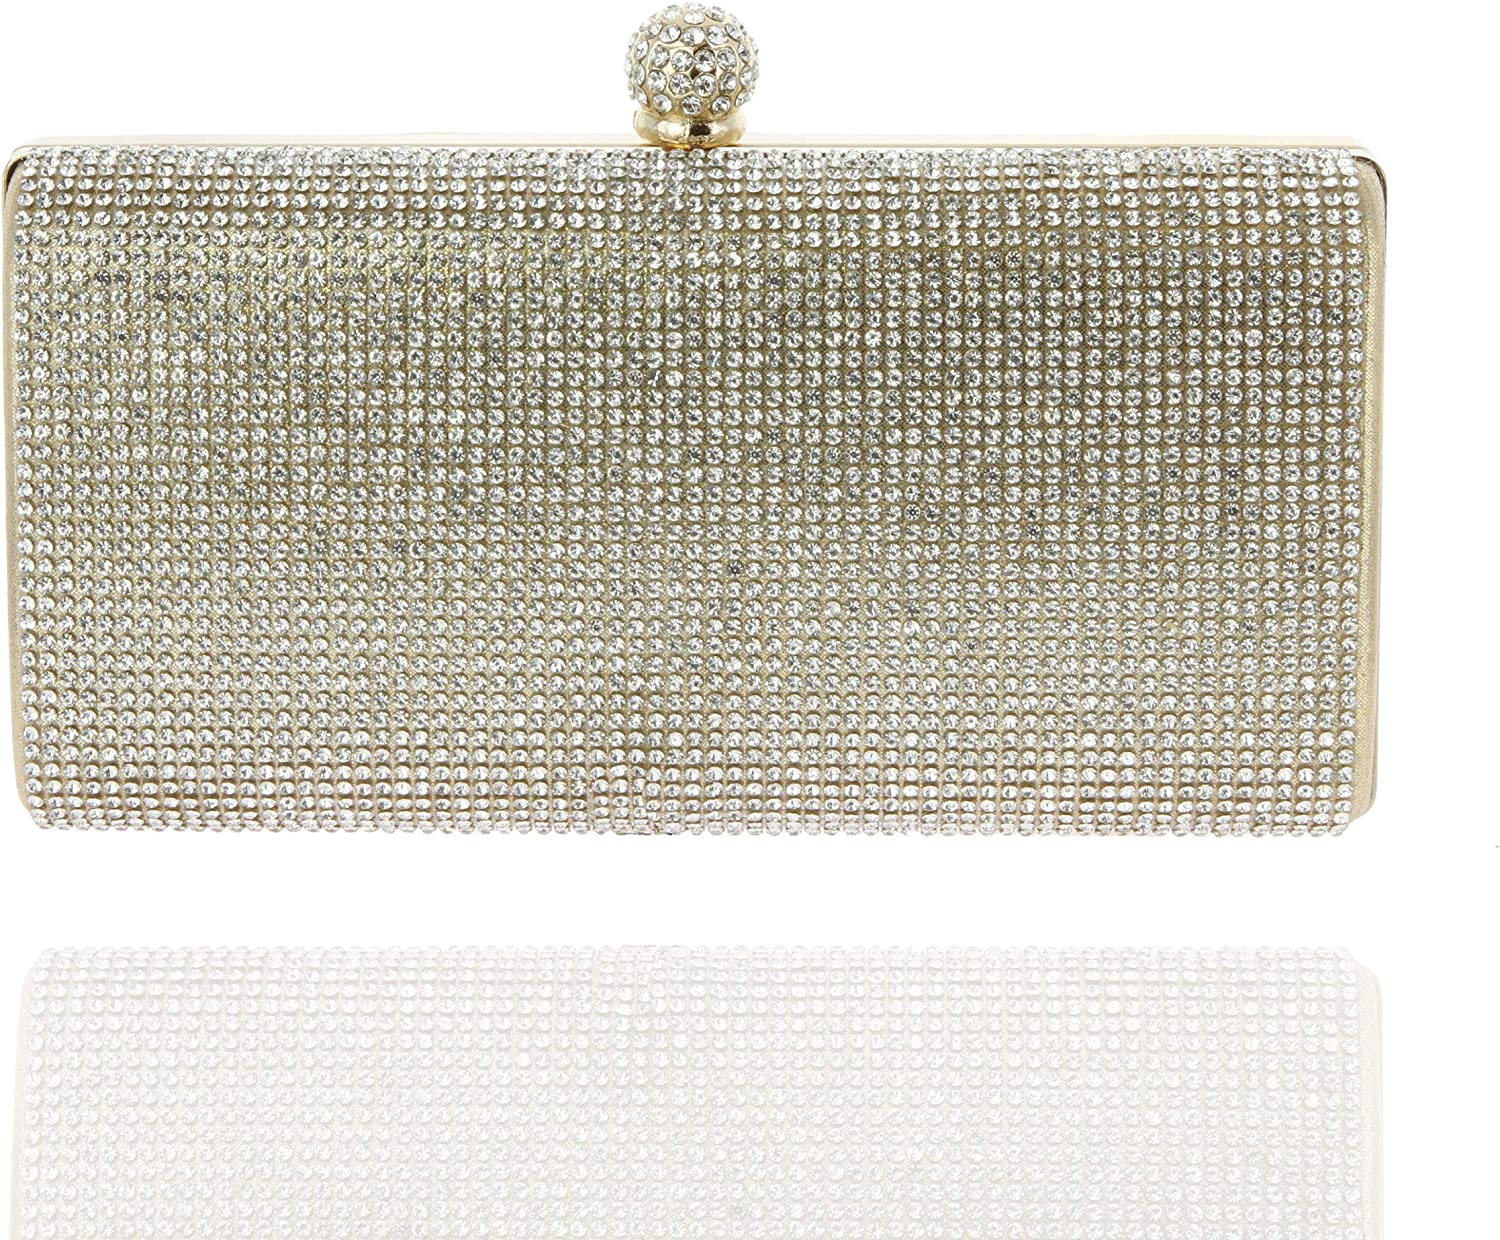 SP SOPHIA COLLECTION Elegant Rectangle Rhinestone Crystal Hand Clutch Evening Bag for Parties